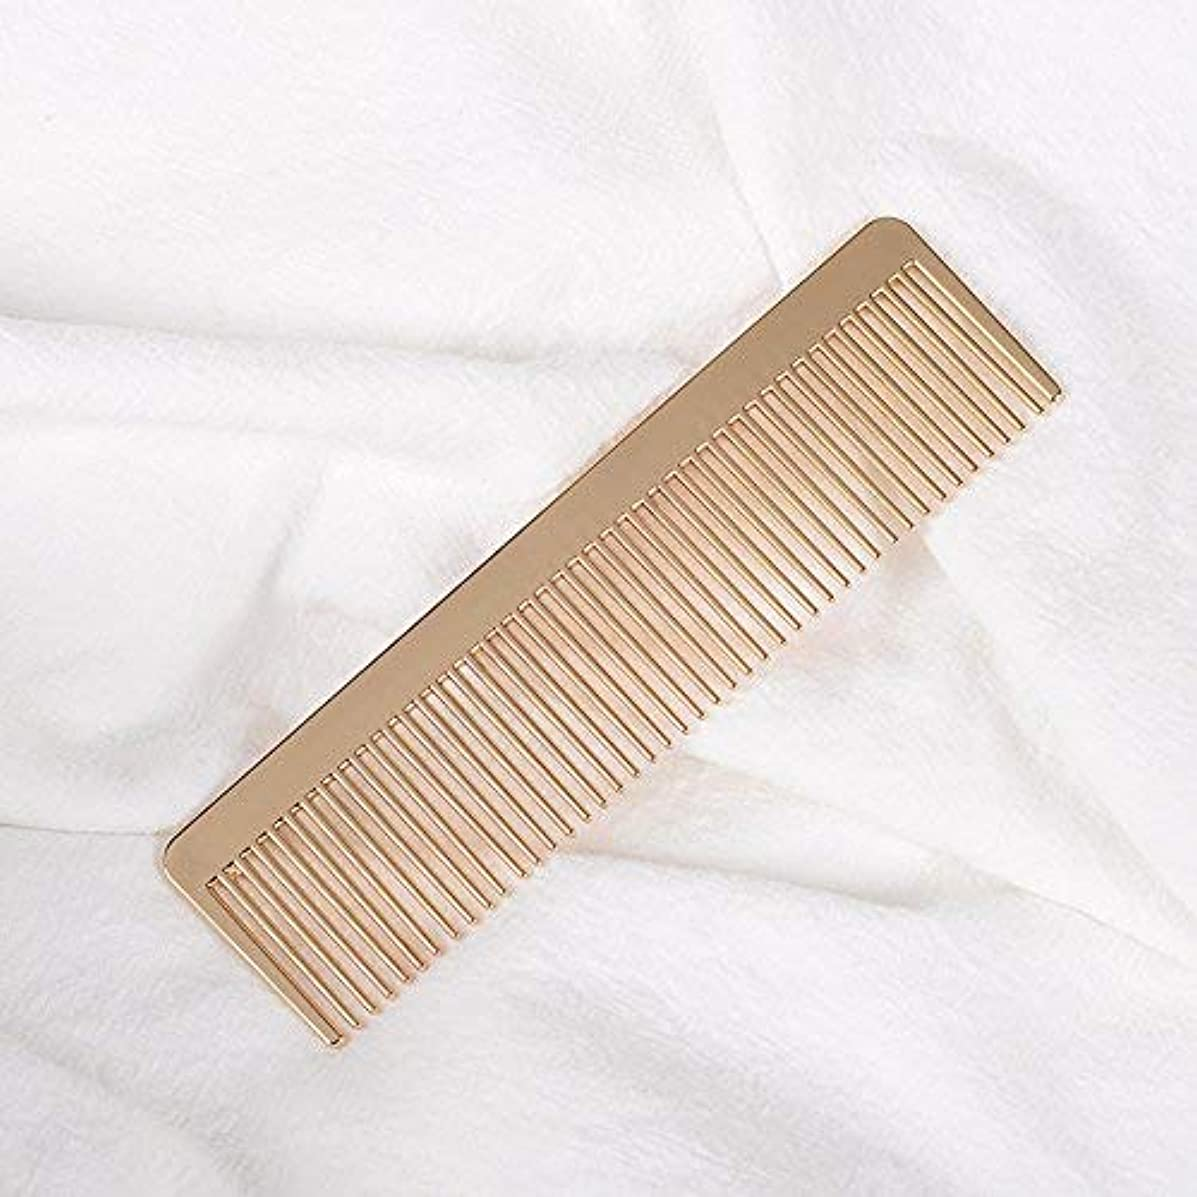 ペット彼女はかび臭いGrtdrm Portable Metal Comb, Minimalist Pocket Golden Hair Comb for Women Men Unisex [並行輸入品]